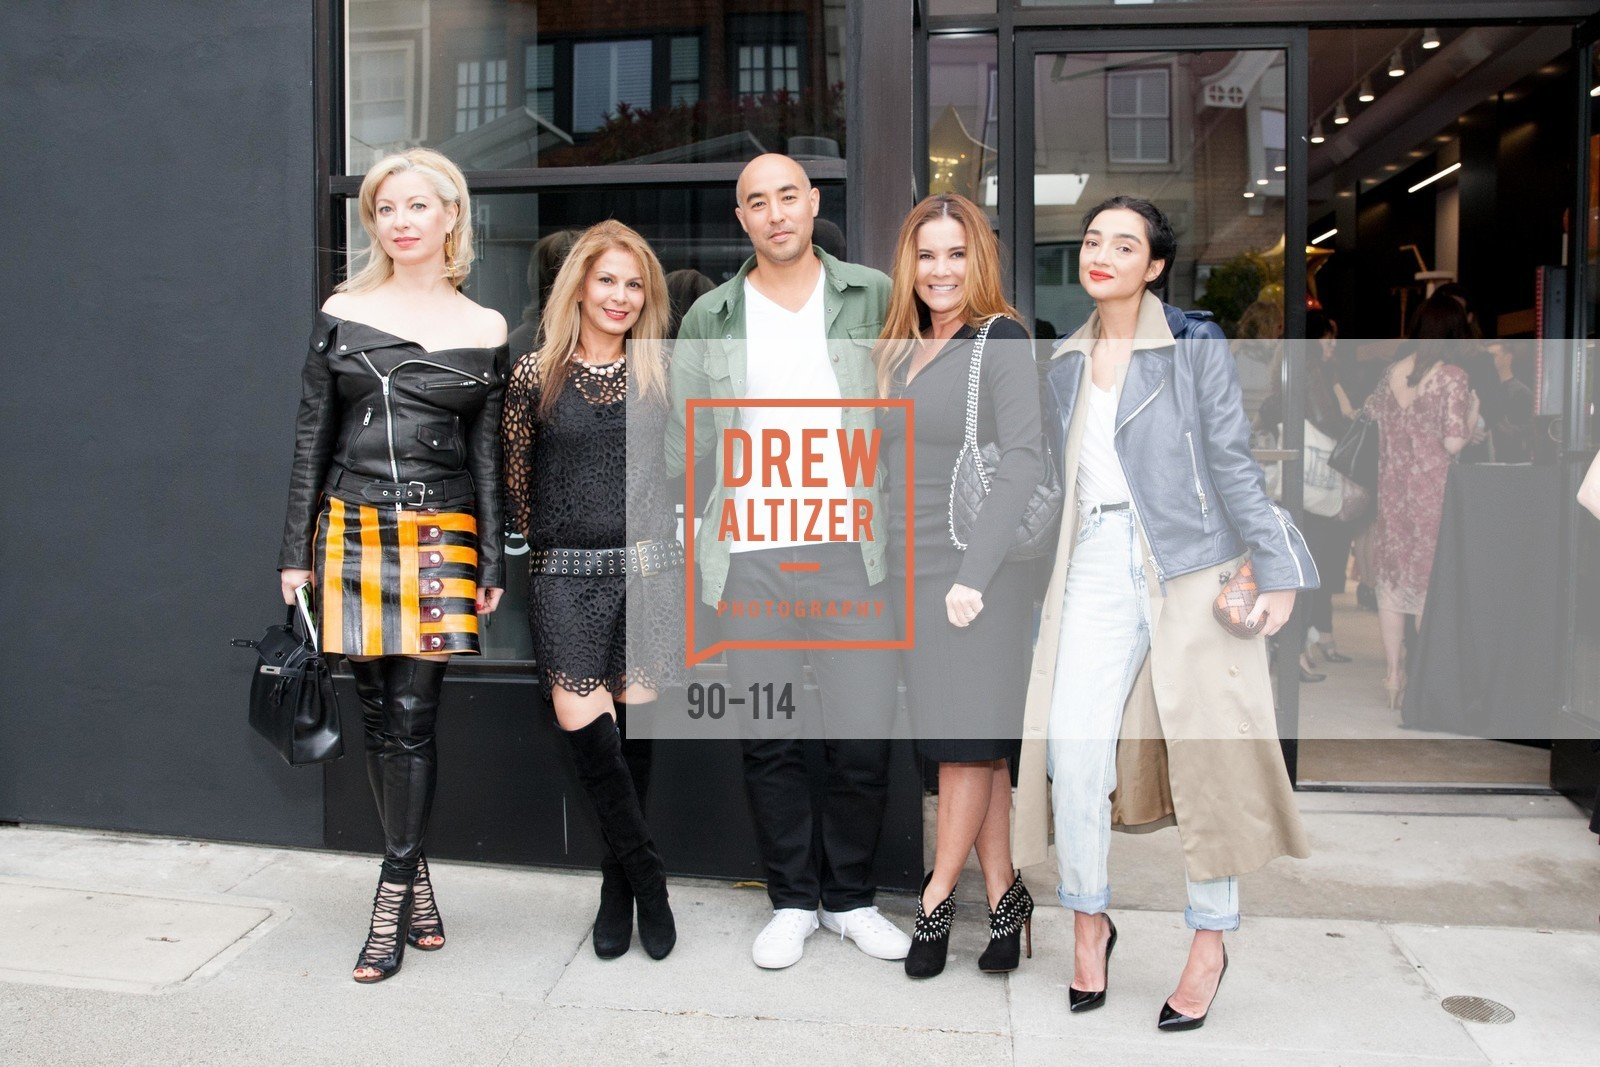 Sonya Molodetskaya, Ladan Mozafar, Max Osterweis, Judy Davies, Olya Dzilikhova, Betty Lin Store Opening Party, Betty Lin. 3625 Sacramento Street, May 19th, 2015,Drew Altizer, Drew Altizer Photography, full-service agency, private events, San Francisco photographer, photographer california